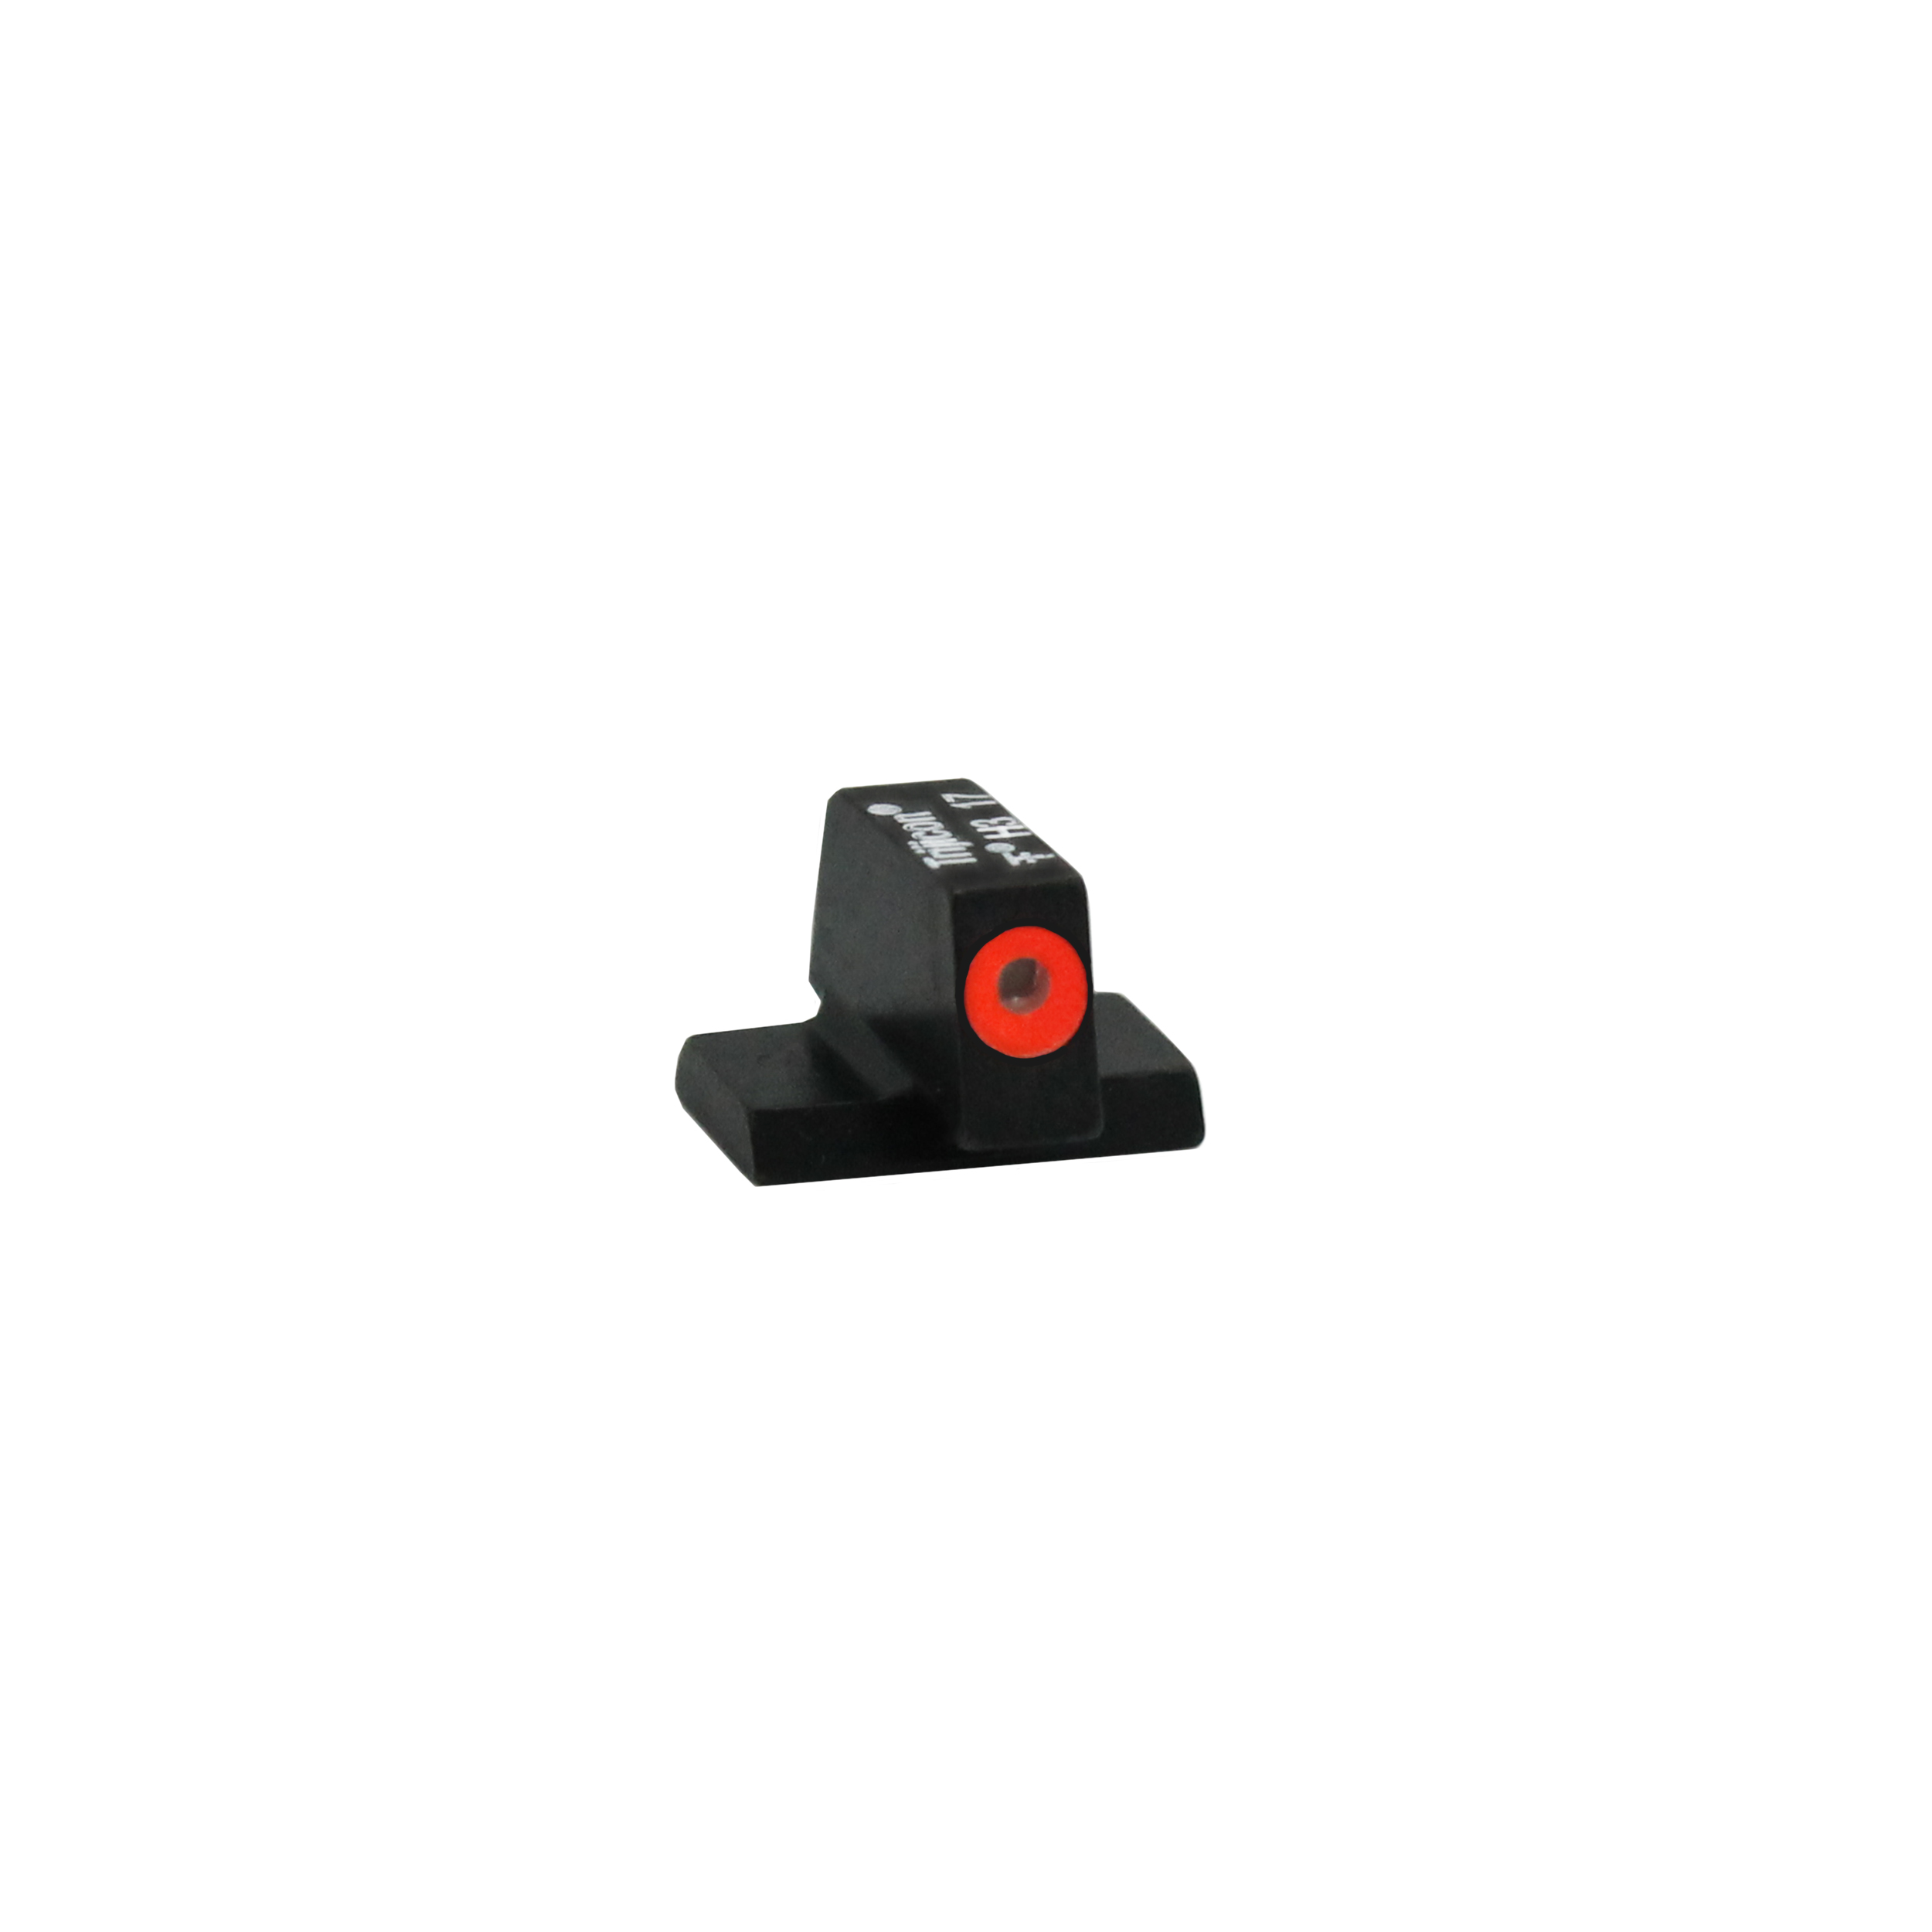 Trijicon HD XR Front Sight S&W M&P M&P M2.0 SD9 VE SD40VE (Excluding M&P Shield), Orange Front Outline Lamp by Trijicon